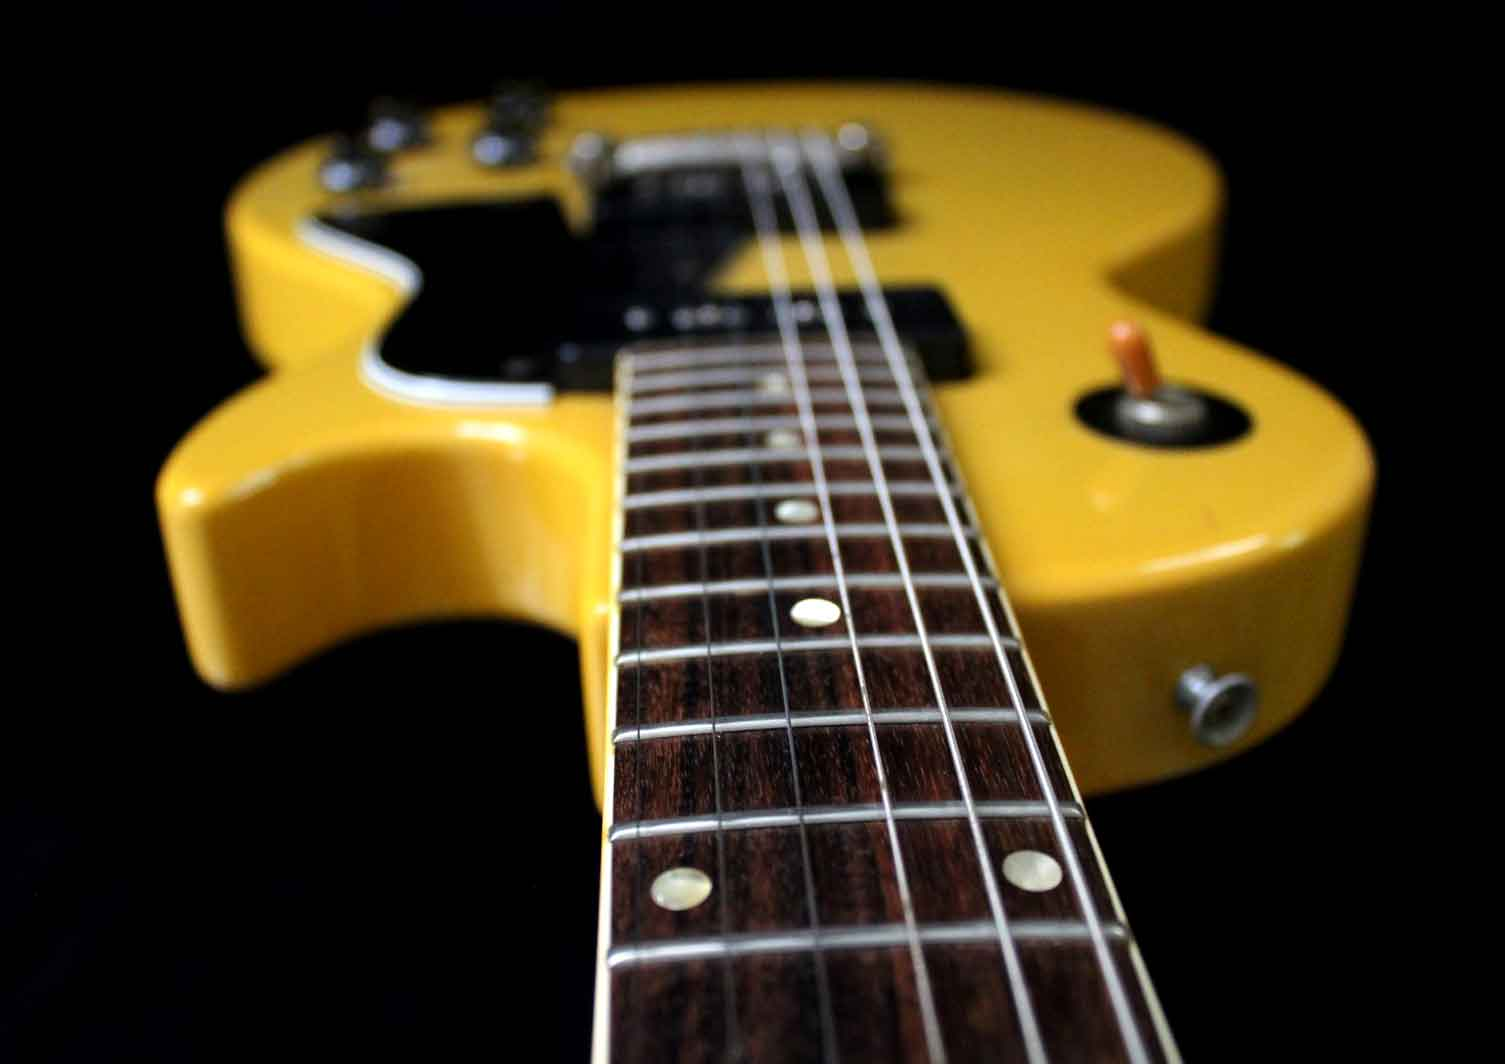 burny les paul dating Chapter xi how to date a burny guitar additional keys if you are looking for information to date an old burny guitar, you are in the right place.